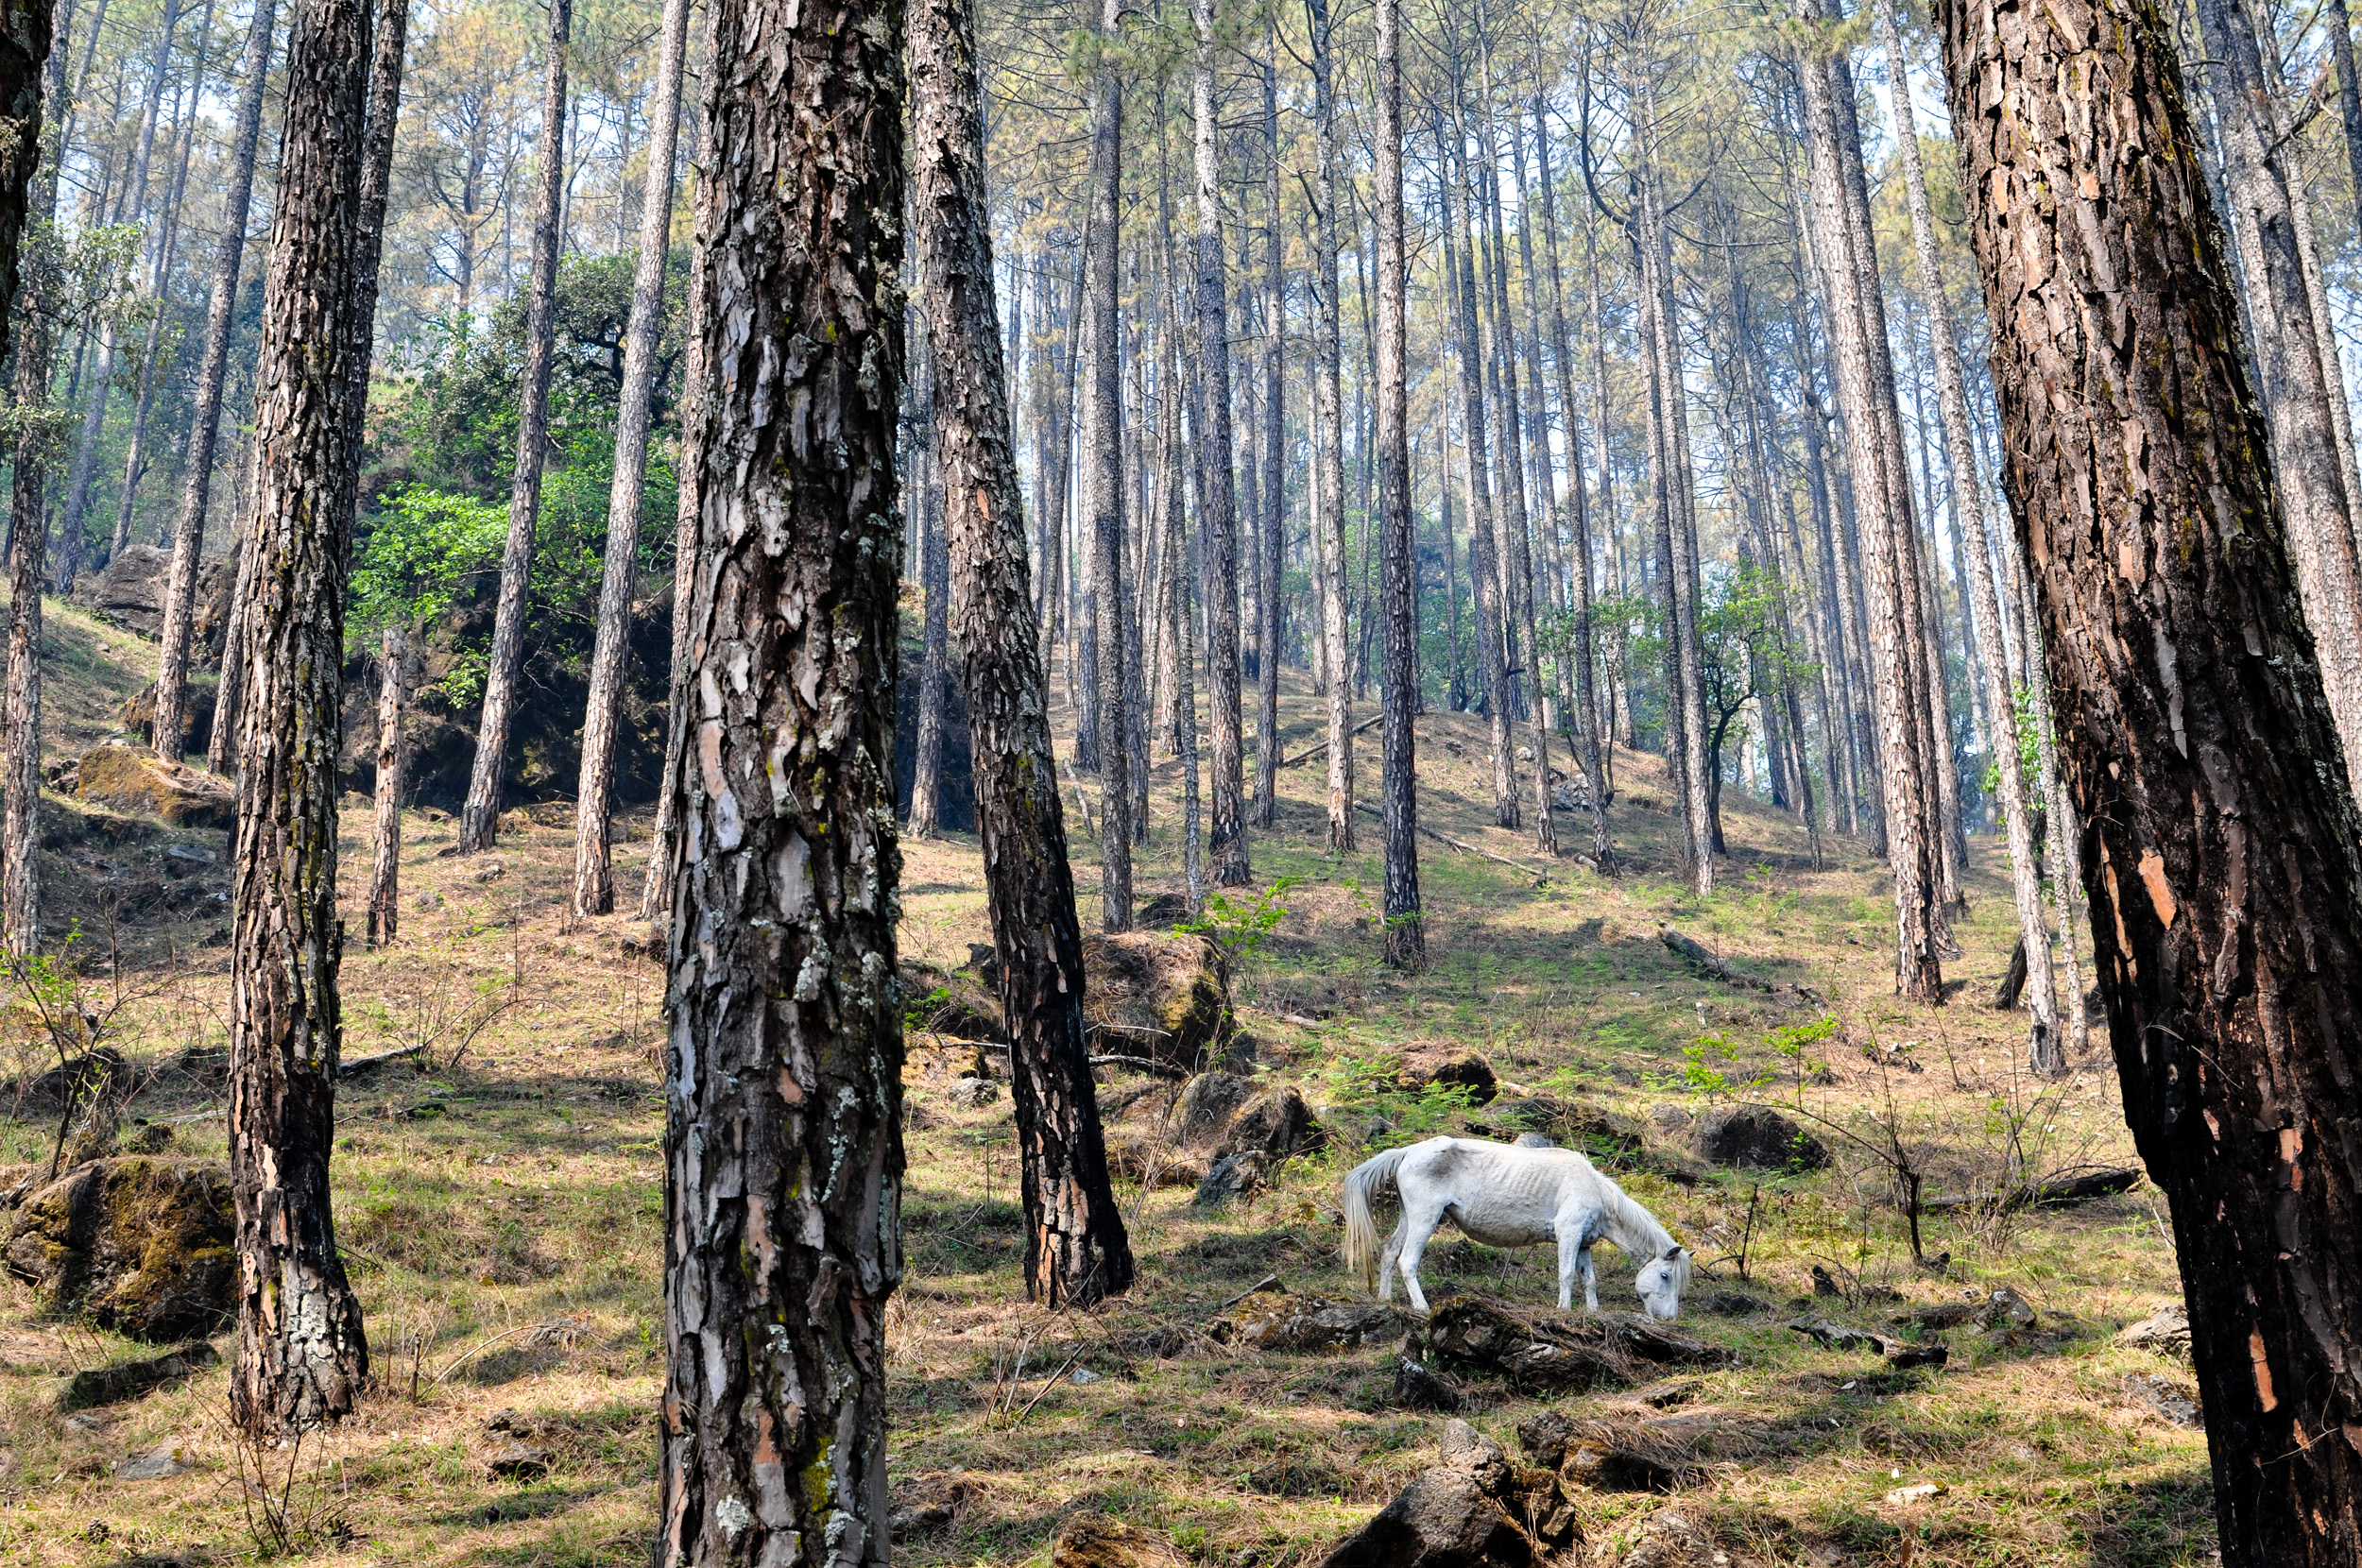 A pack horse grazes freely in a pine forest.